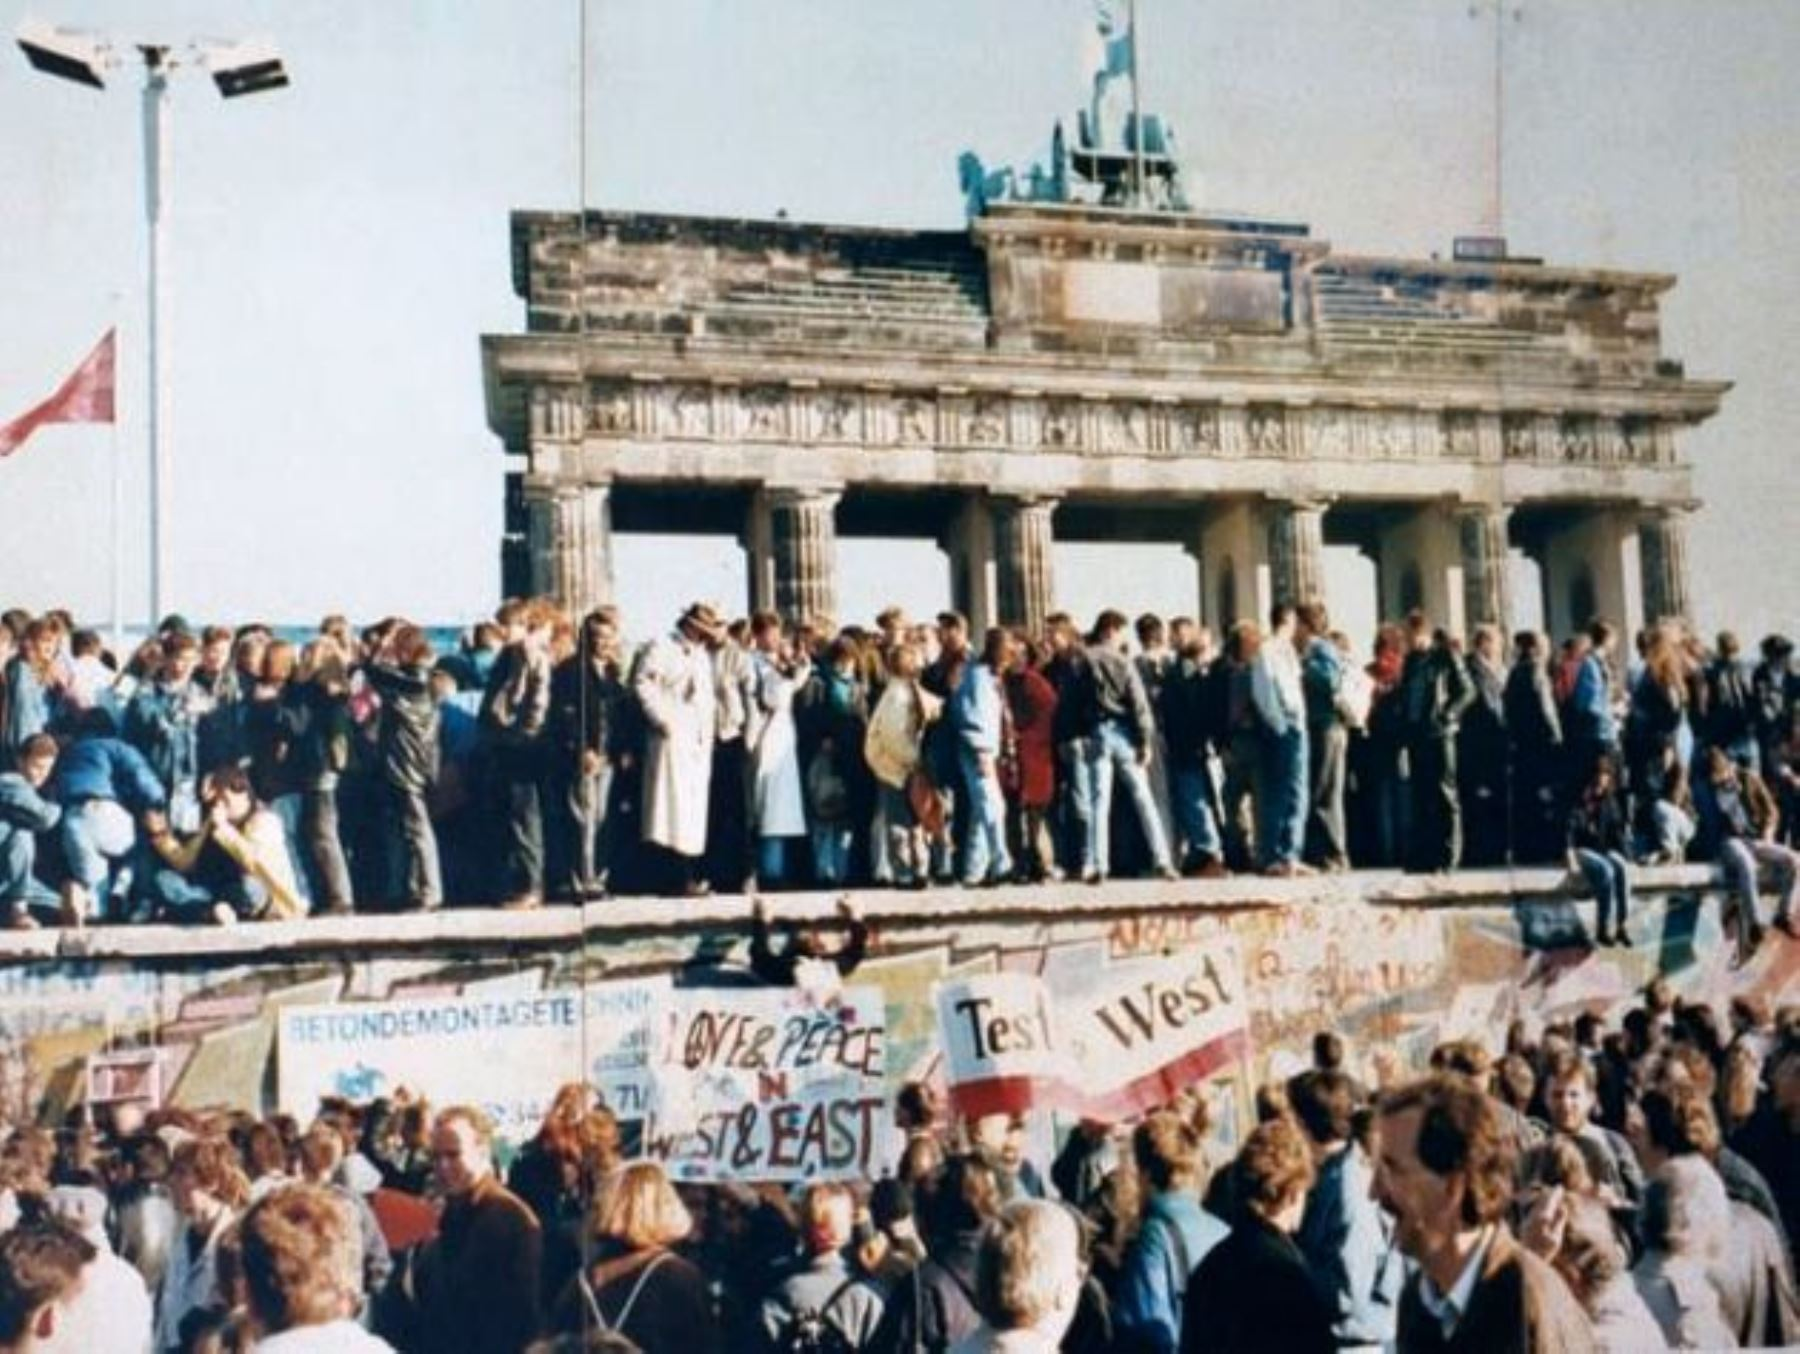 The Fall of the Berlin Wall, 1989. The photo shows a part of a public photo documentation wall at the Brandenburg Gate, Berlin. The photo documentation is permanently placed in the public. Photo: Original photo taken 9 November 1989 by unknown author. Reproduction from public documentation/memorial by Lear 21 at English Wikipedia. (CC BY-SA 3.0).